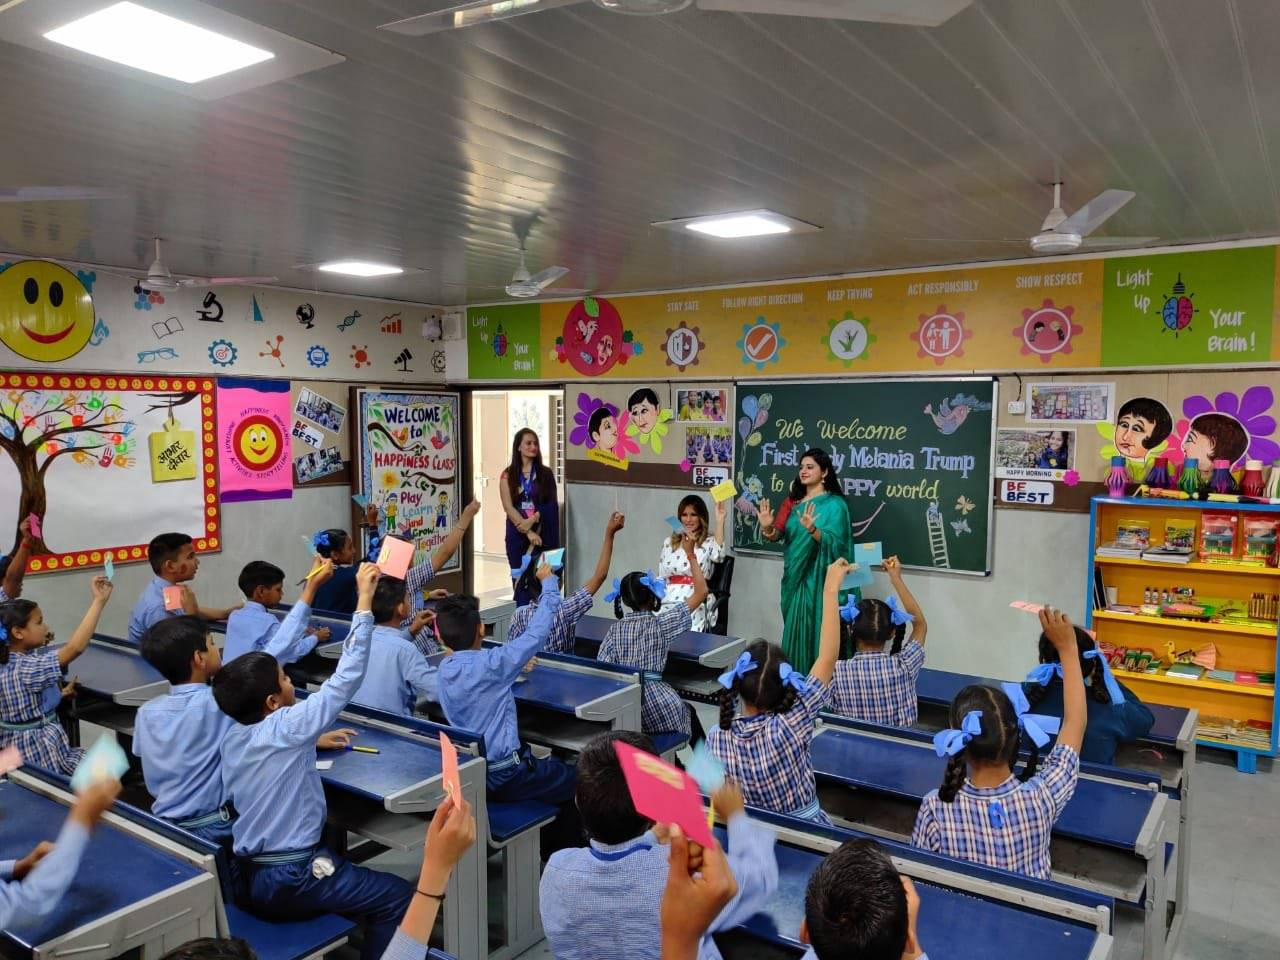 US First Lady Melania Trump to visit Delhi government school to attend Happiness class today